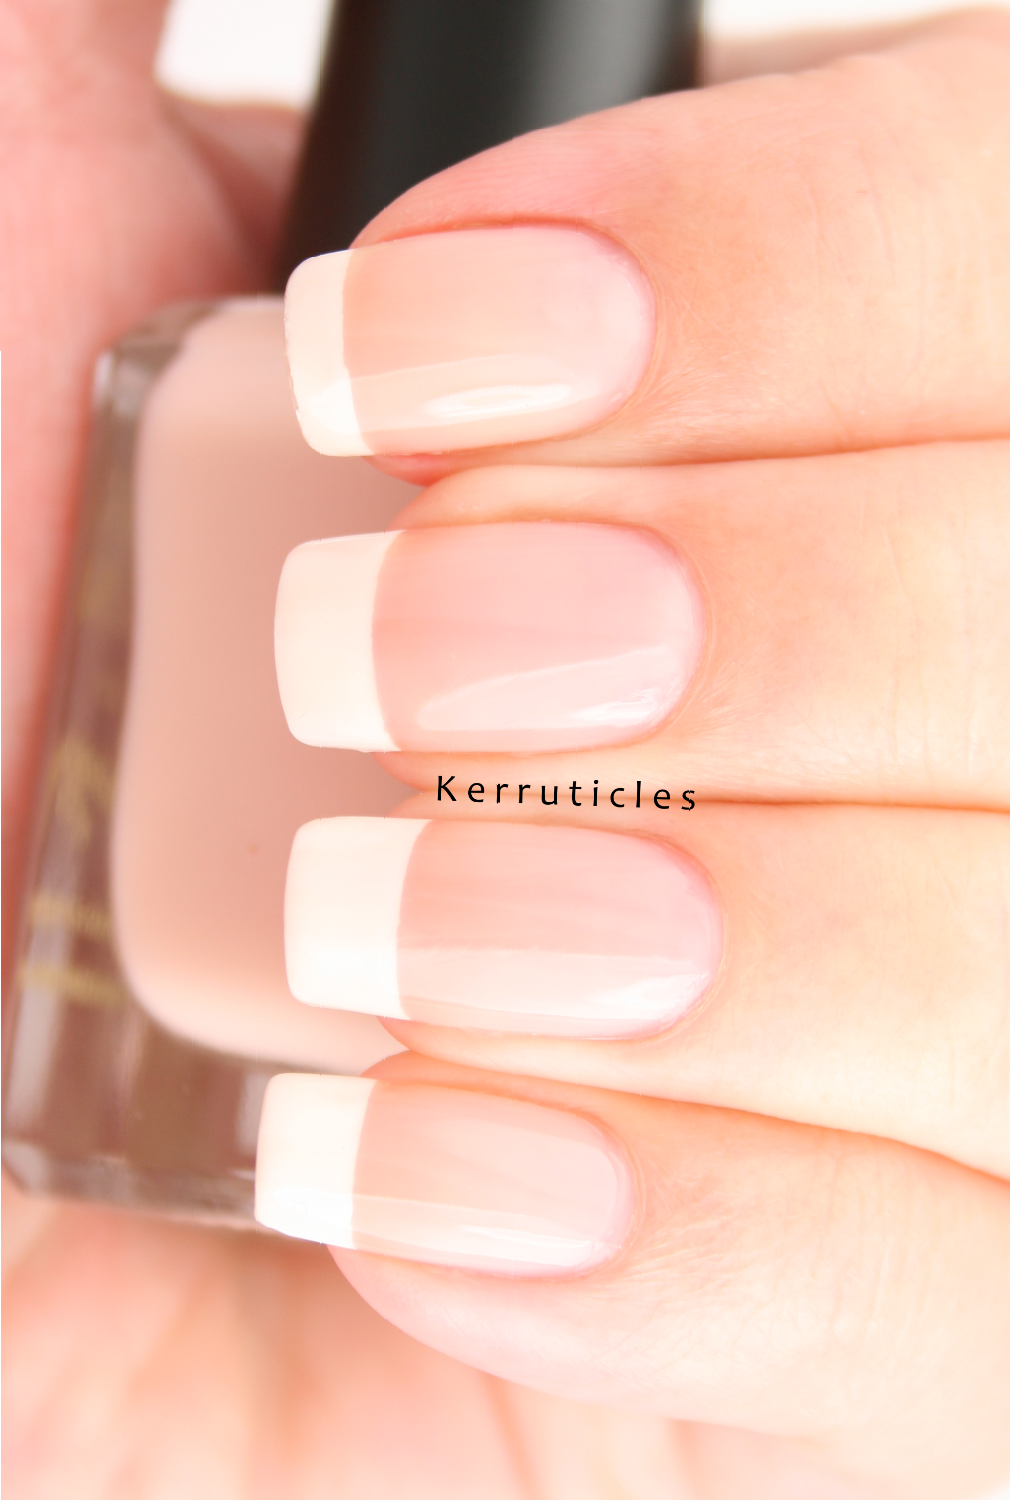 N is for: Nude from Barry M: classic French manicure | Kerruticles